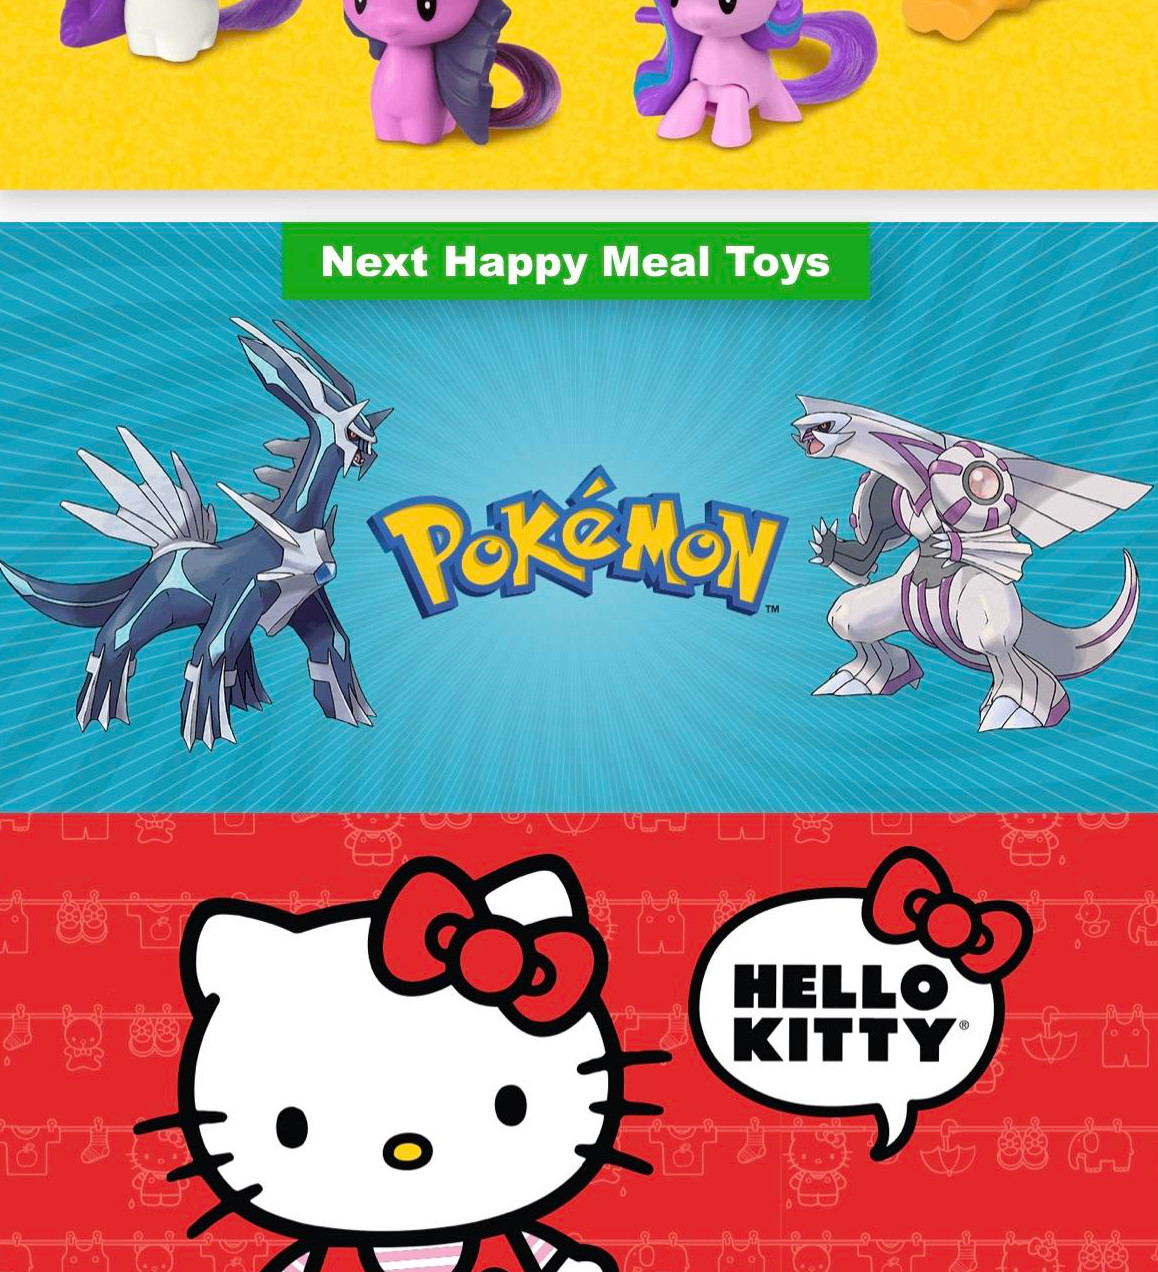 pokemon go mcdonald's happy meal toys gen 4